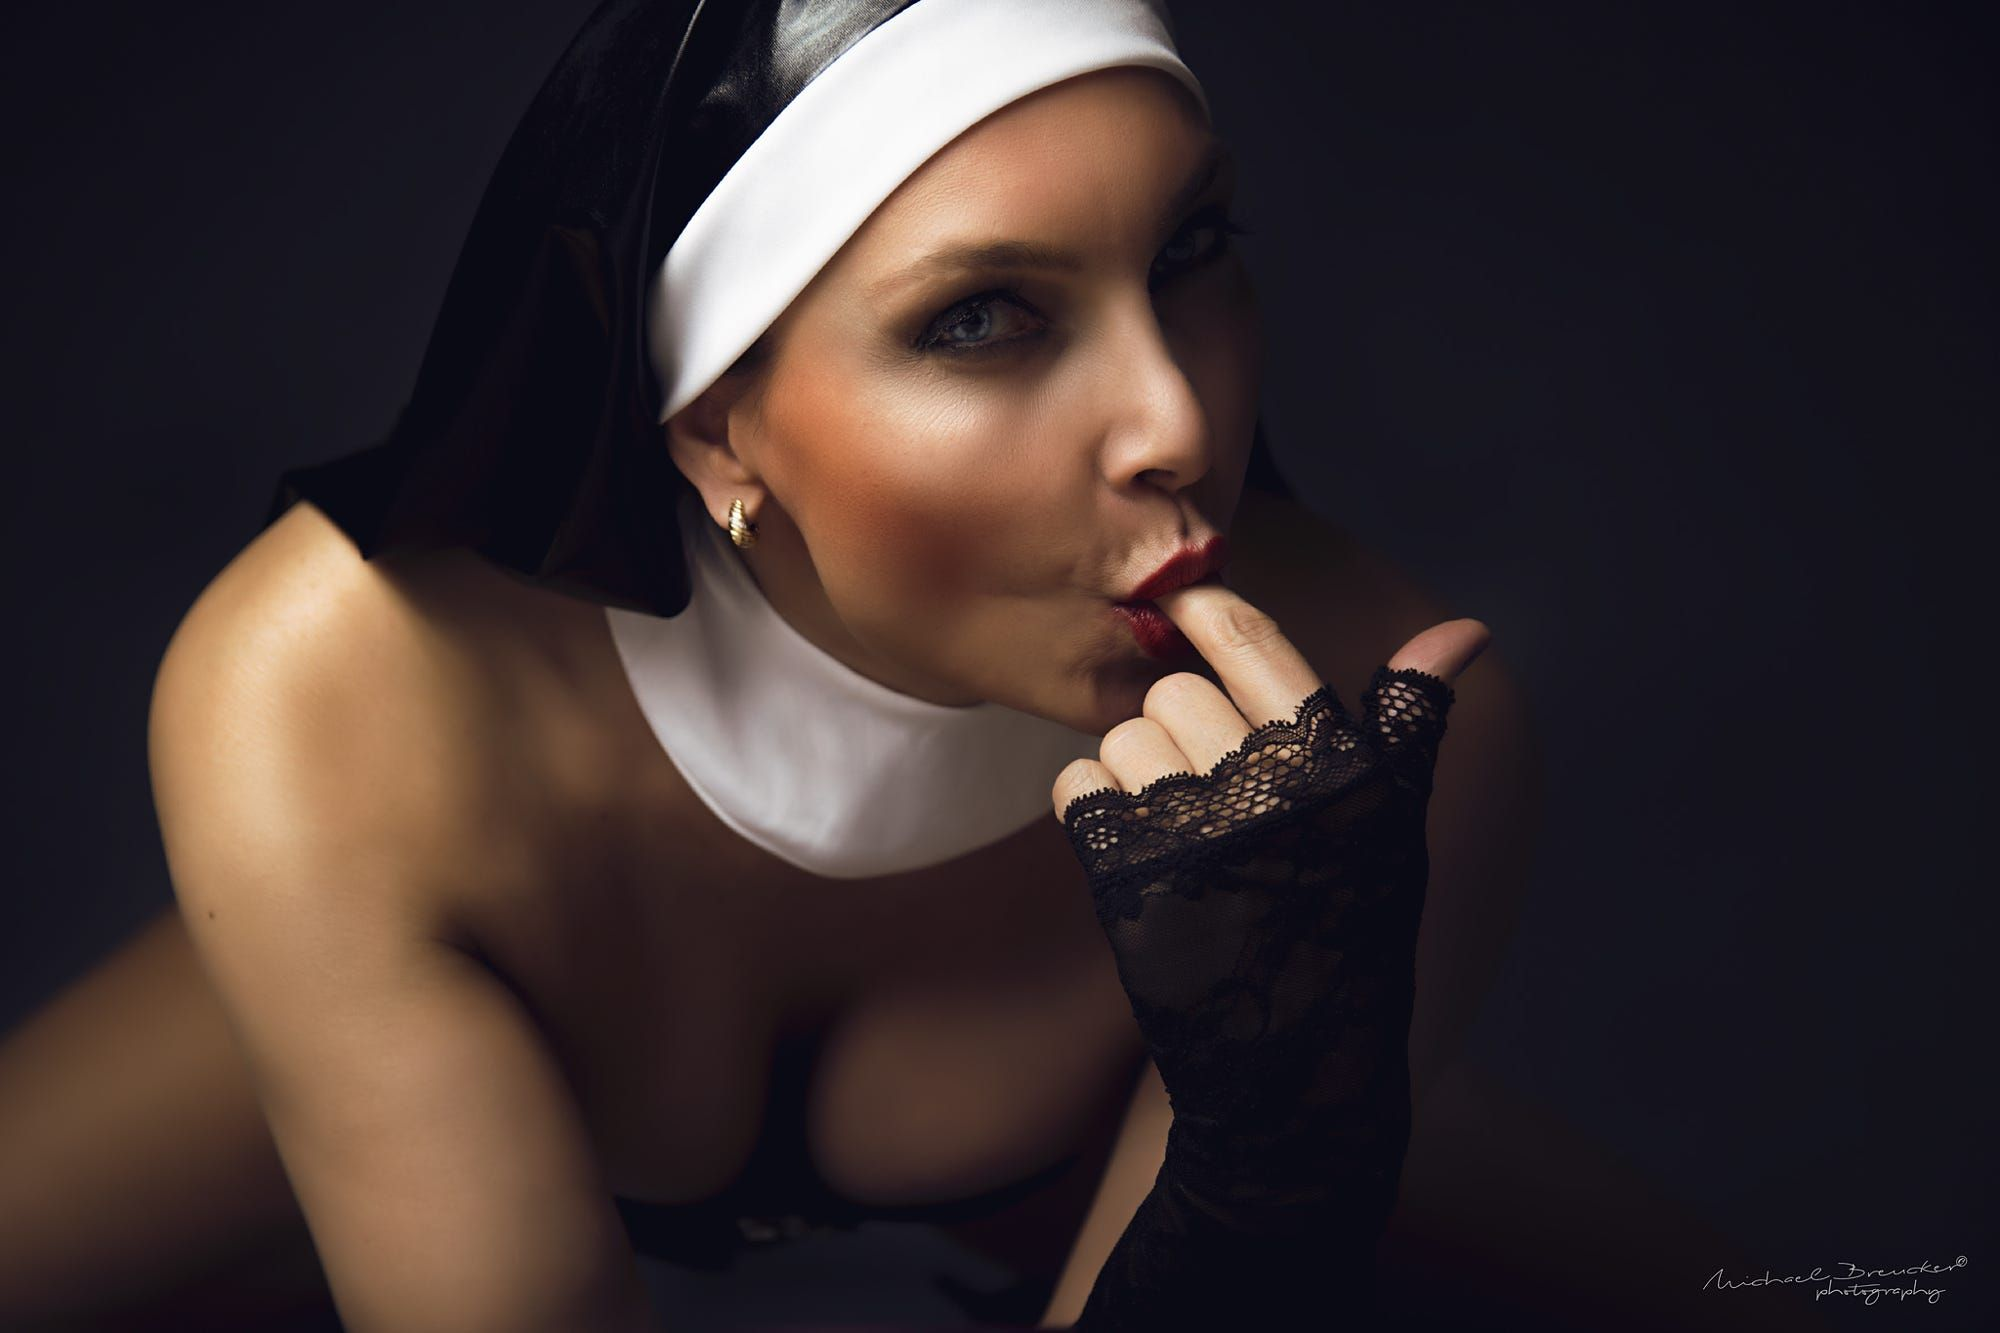 sinful nunmichael breucker on 500px | your pinterest likes